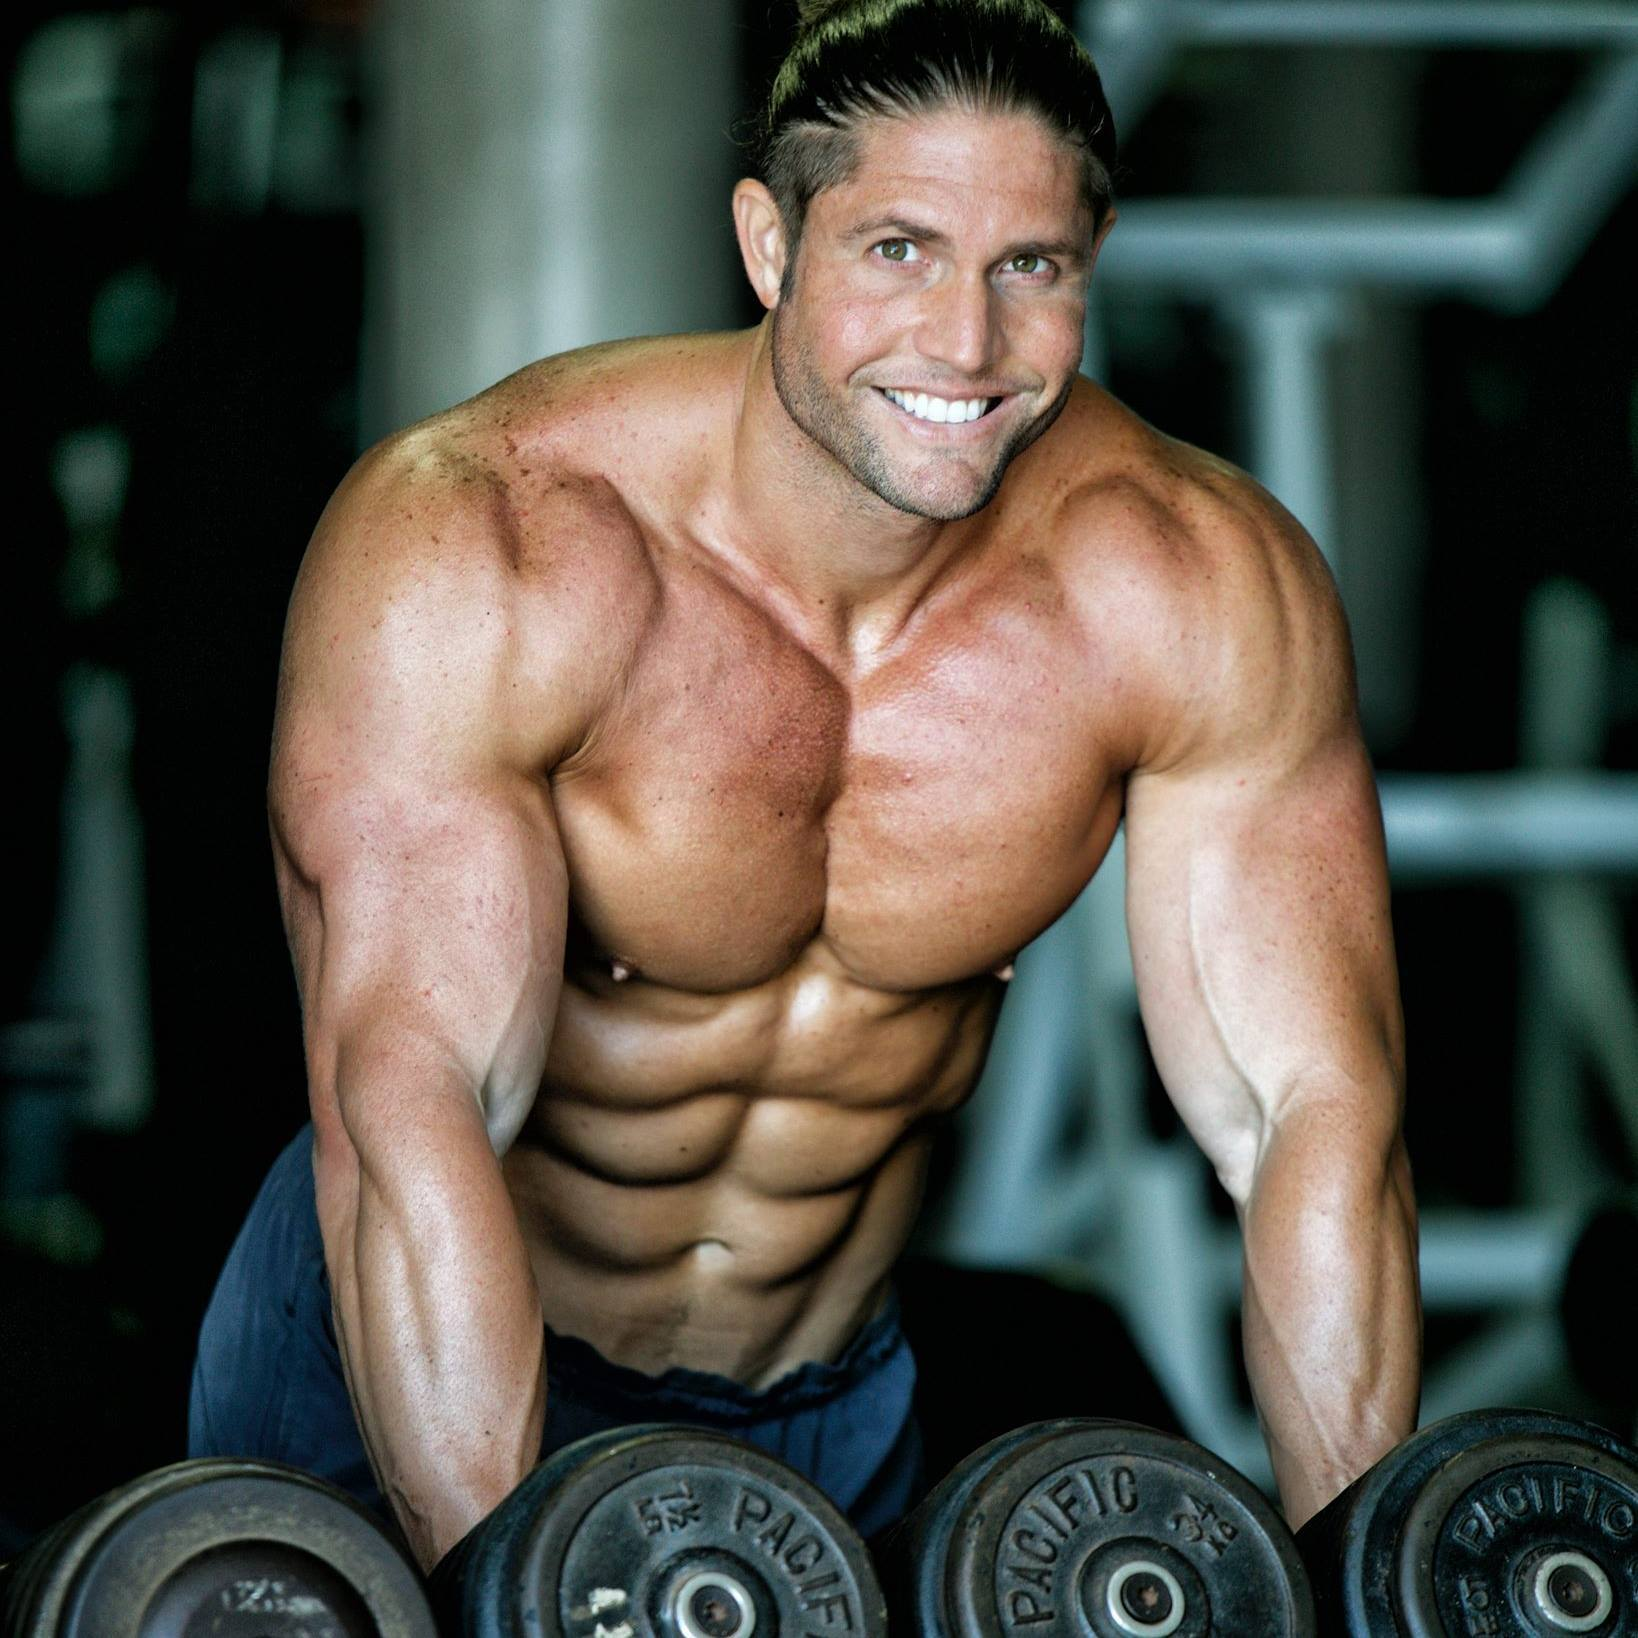 Terry Asher Gym Junkies